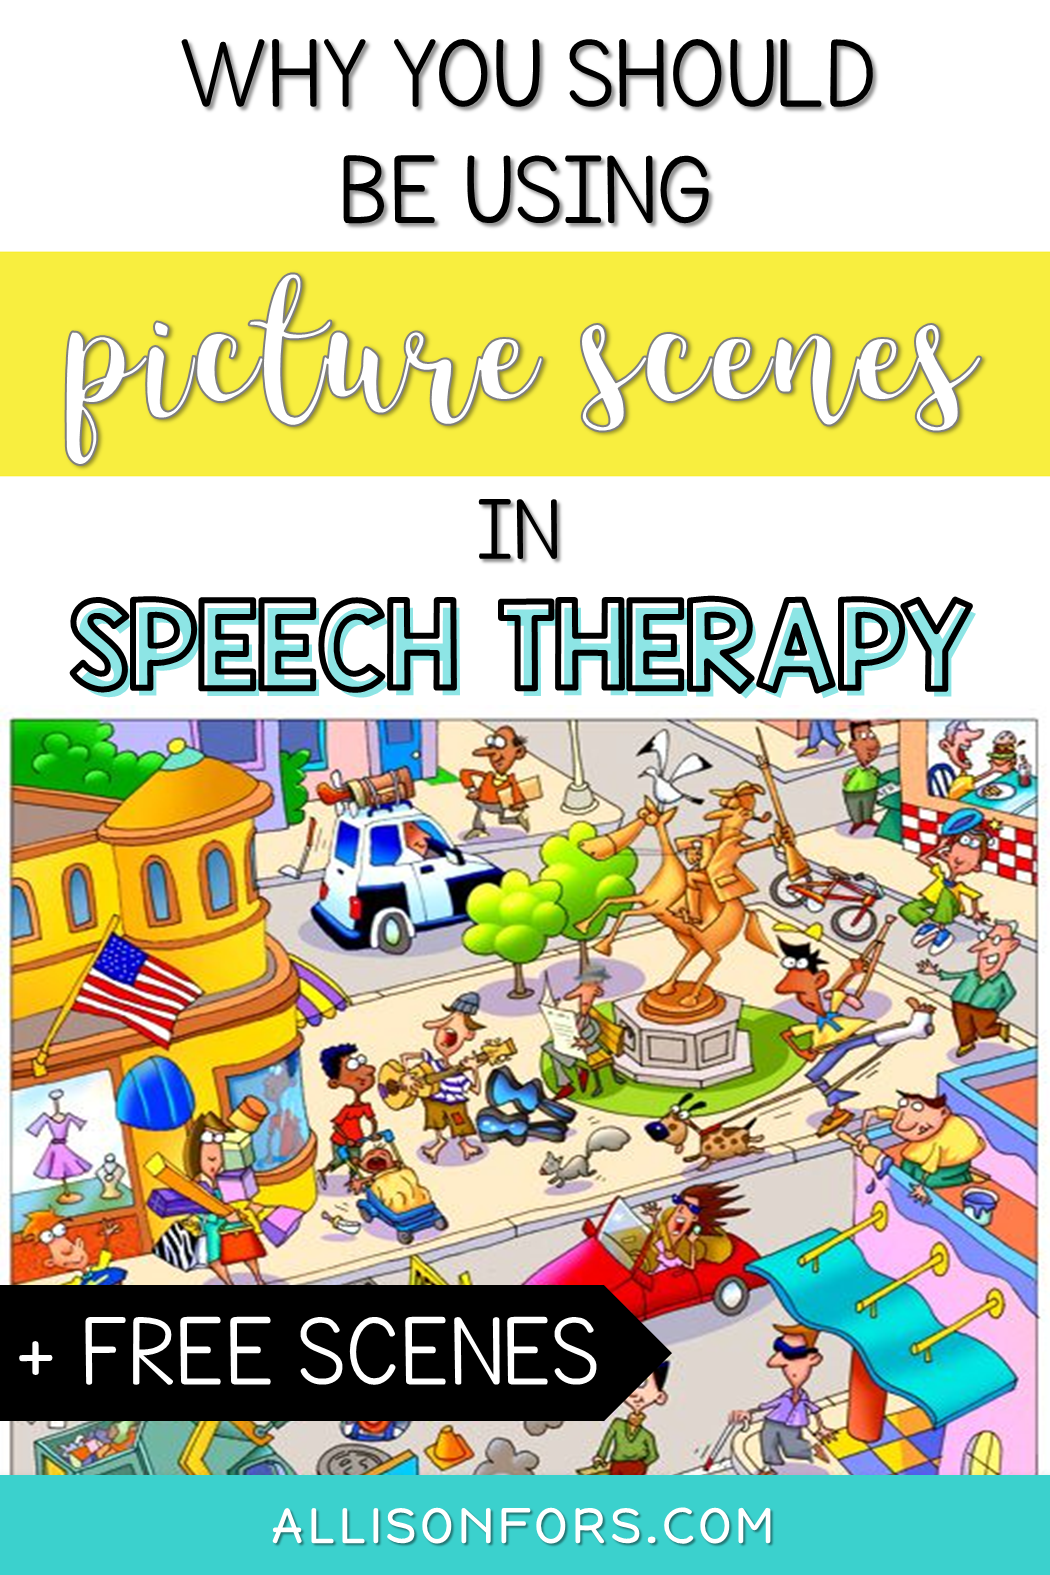 picture scenes speech therapy - Allison Fors